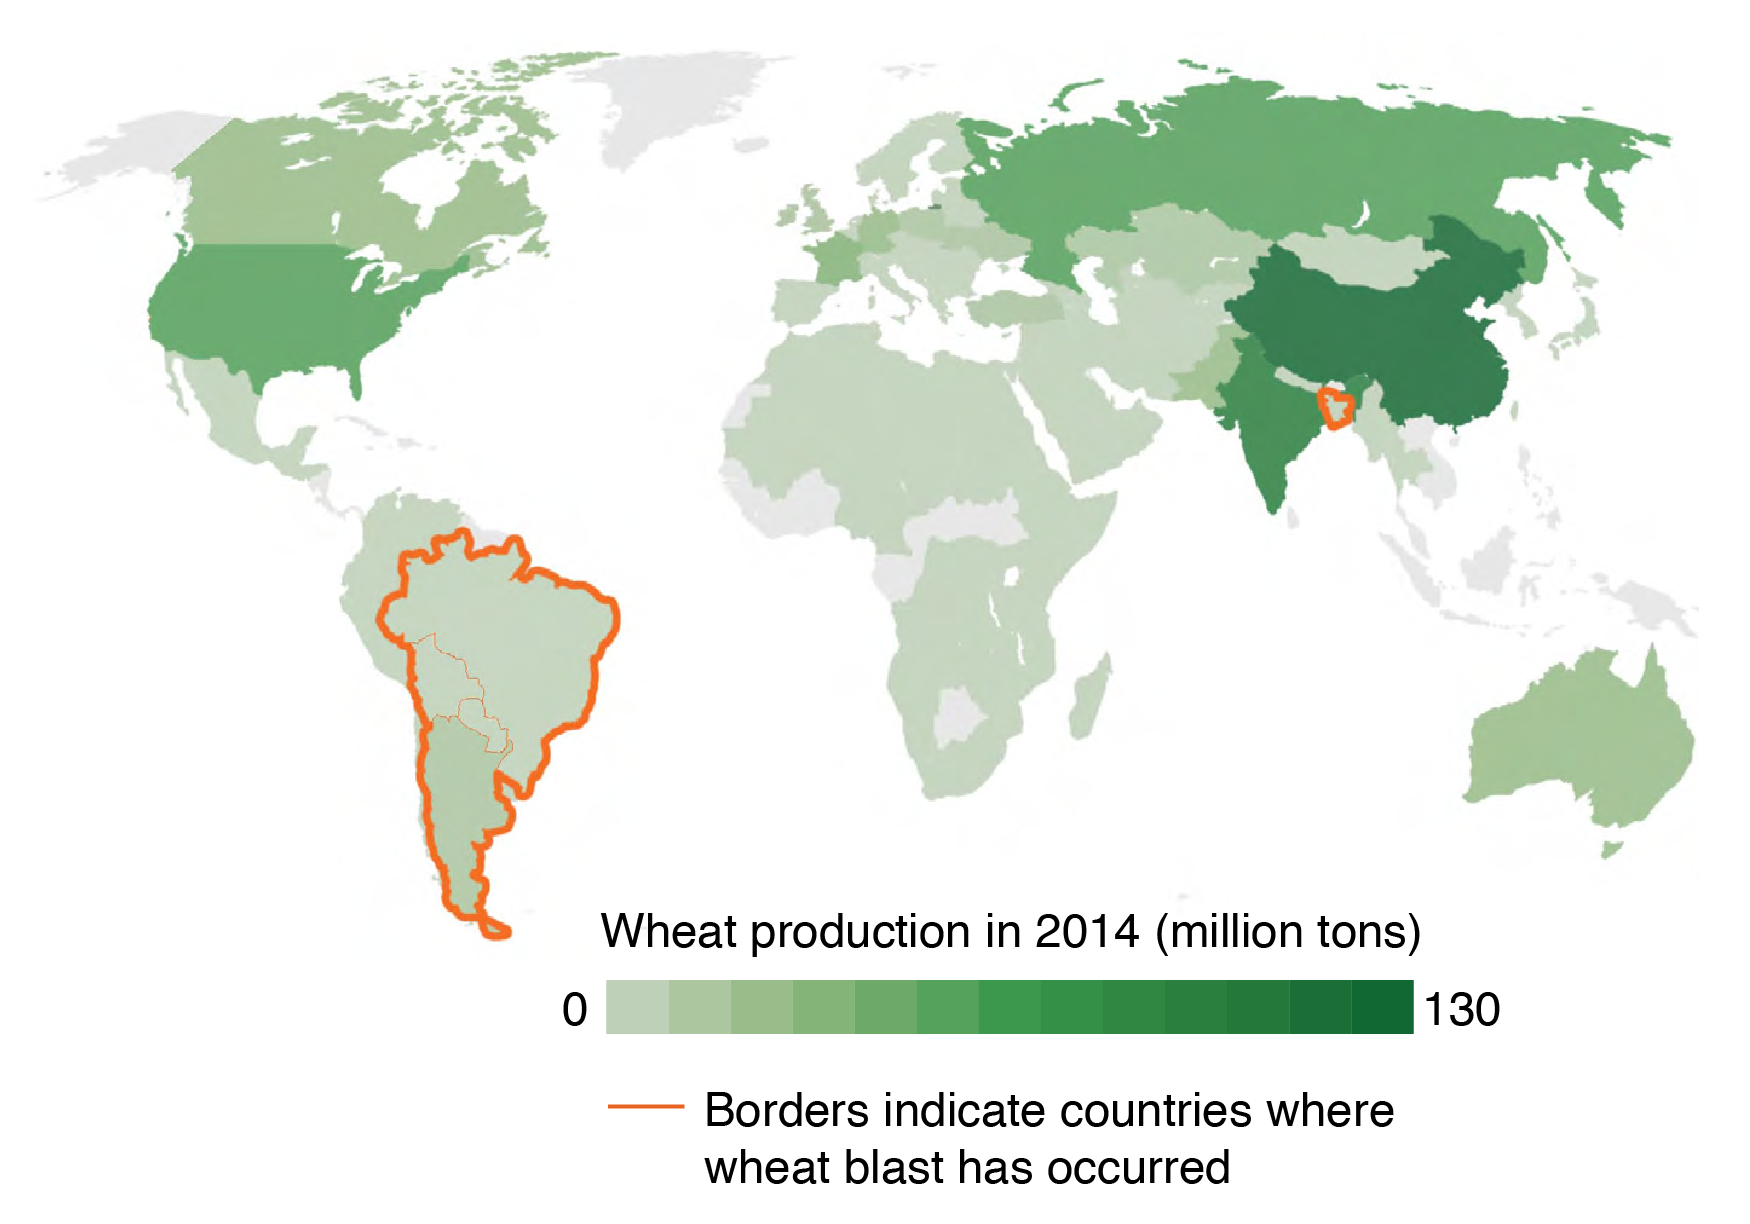 Wheat-producing countries and presence of wheat blast.